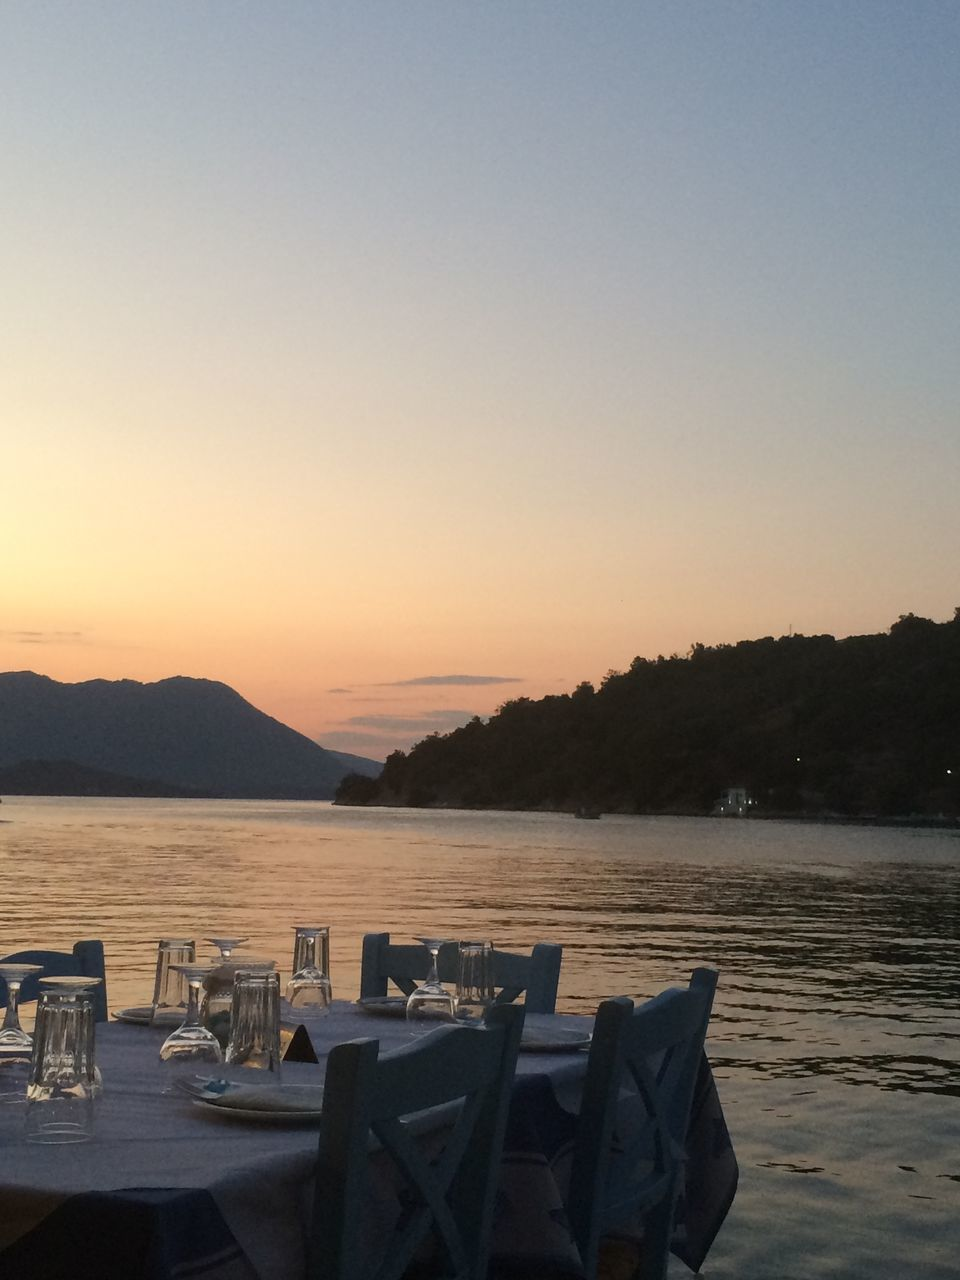 Place Setting By River Against Clear Sky During Sunset